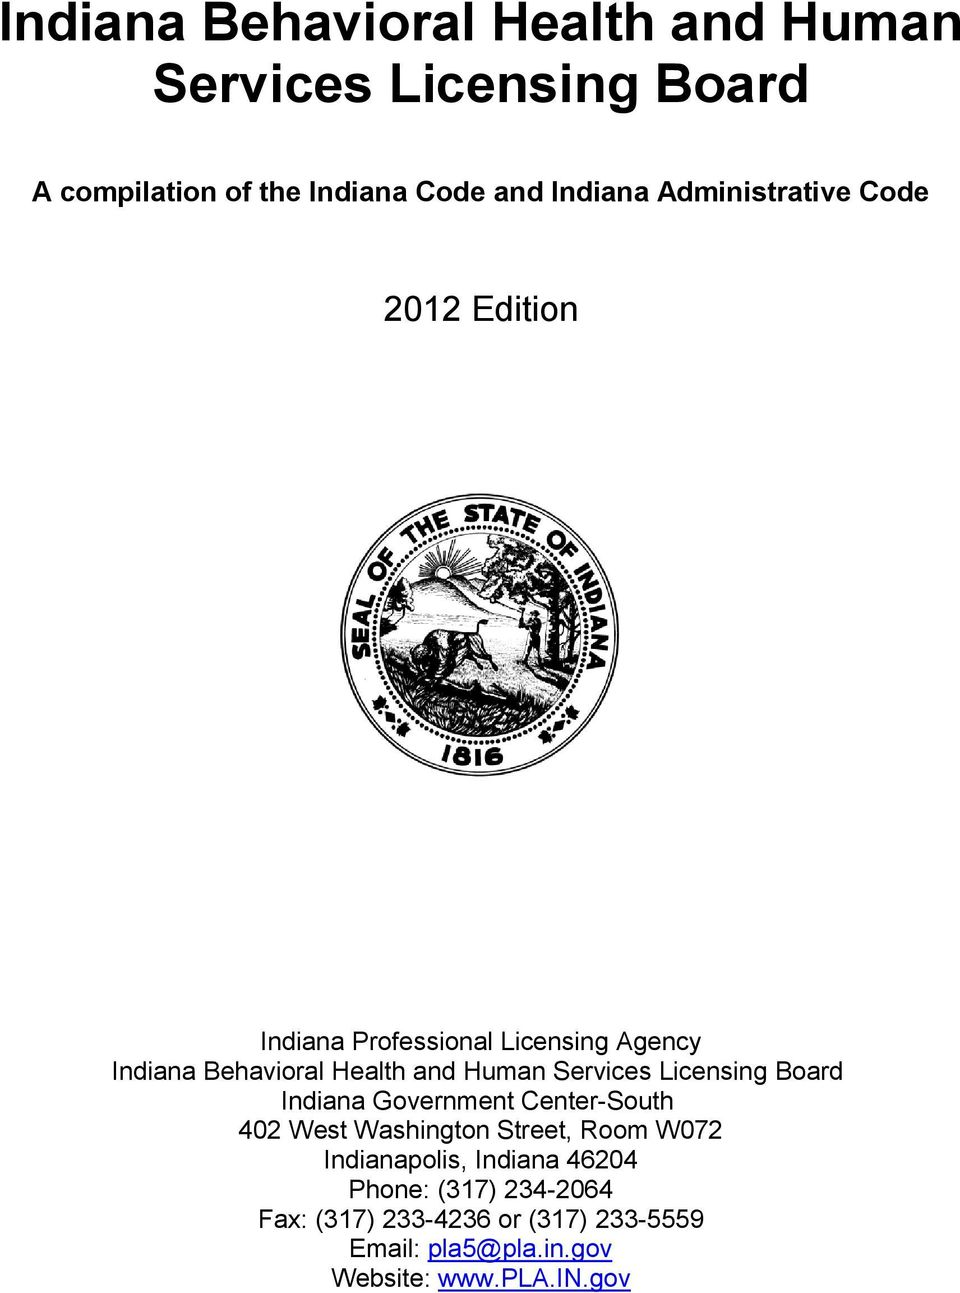 Services Licensing Board Indiana Government Center-South 402 West Washington Street, Room W072 Indianapolis,